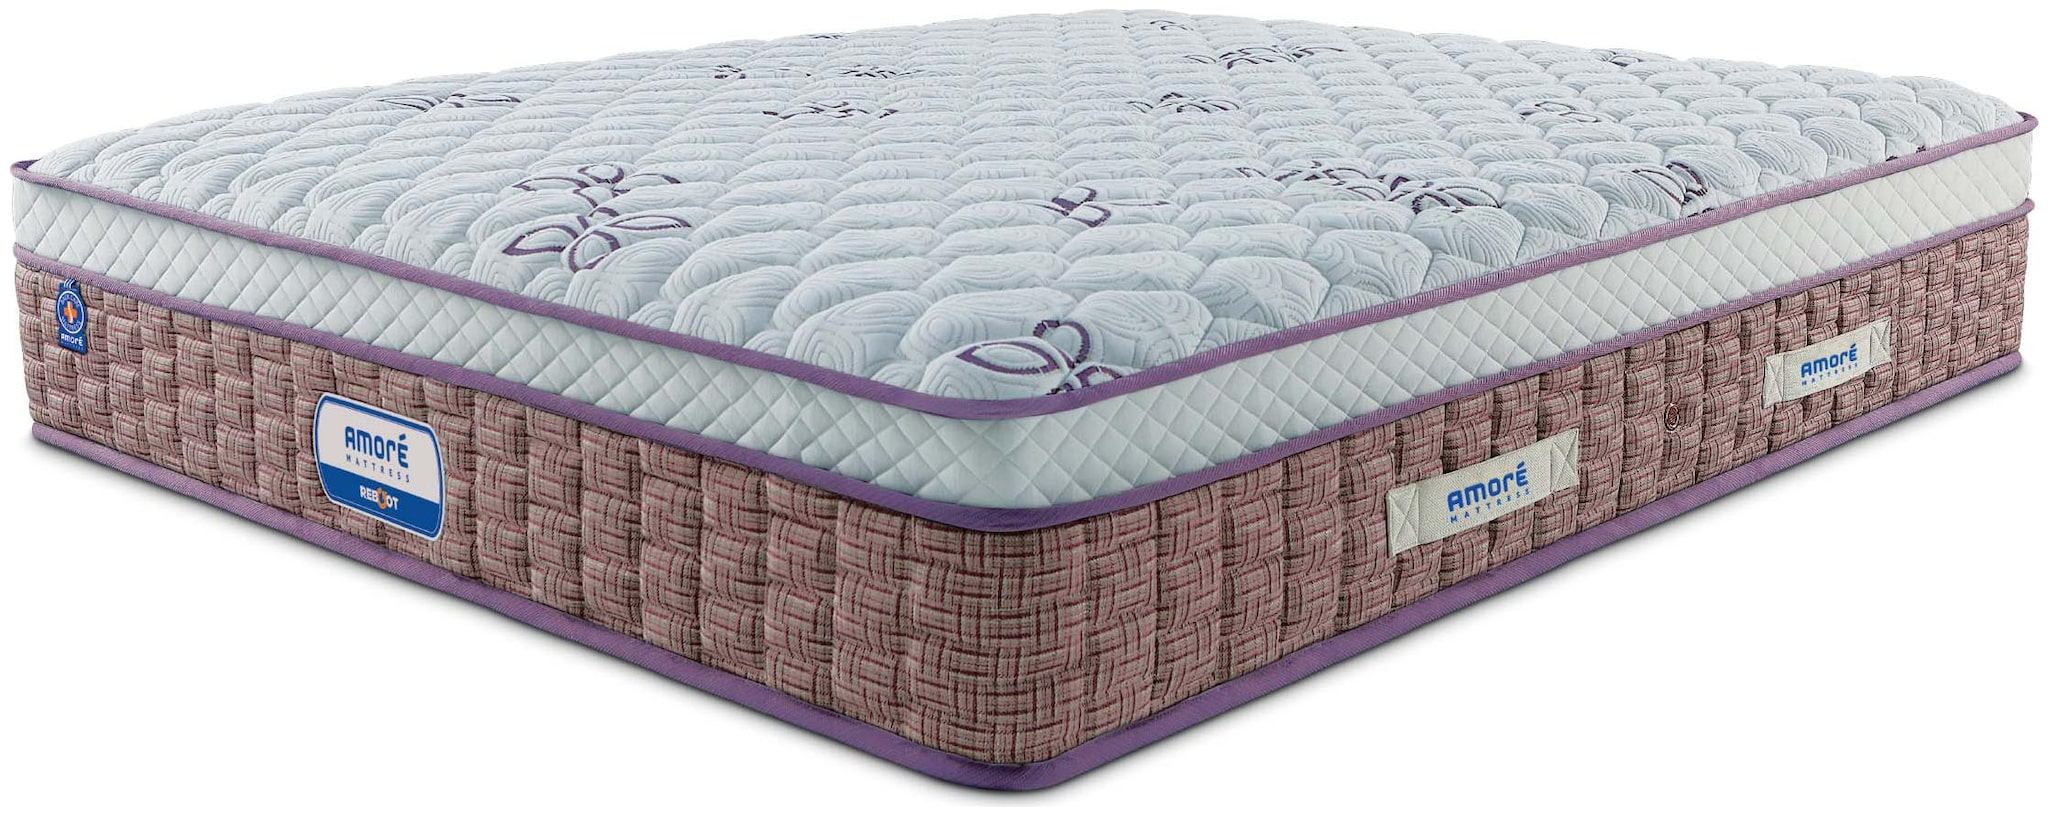 AMORE INTERNATIONAL 6 inch Pocket Spring Queen Size Mattress by Amore International